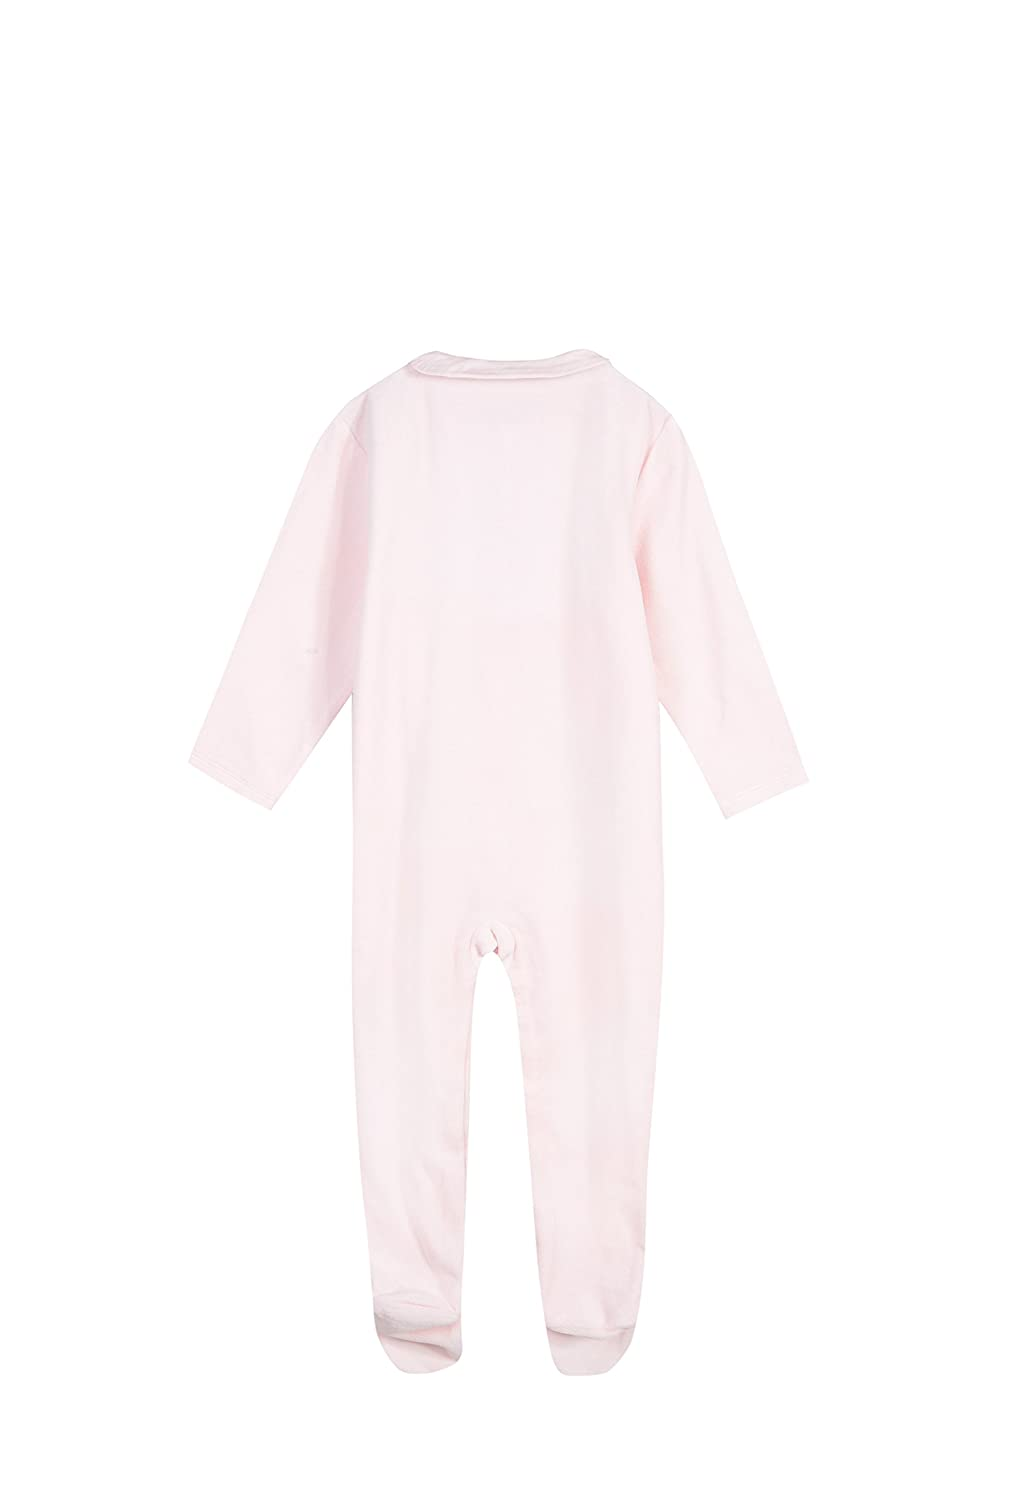 Z Baby Girls Sleep Well Rose Knots Fantasy Front Onesie